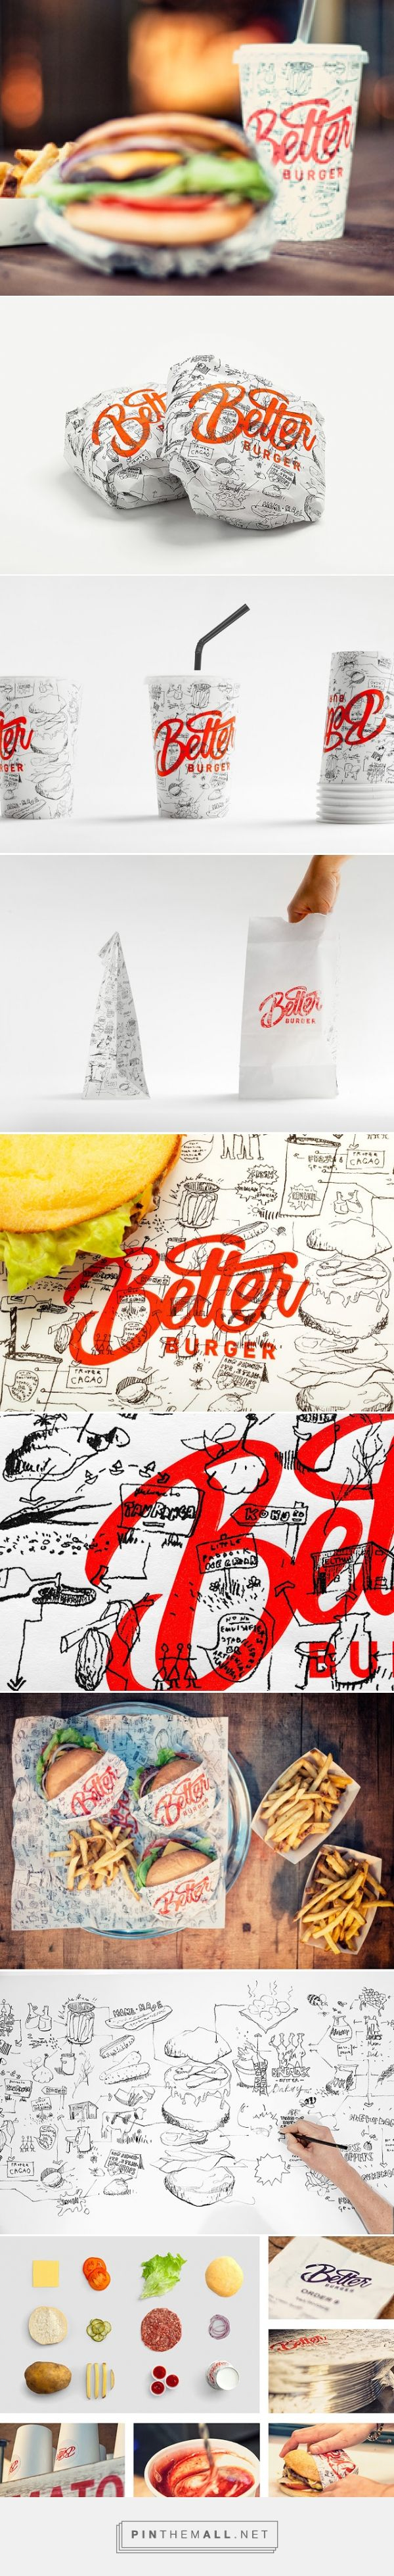 Better Burger packaging branding via Packaging of the World curated by Packaging Diva PD. Looks pretty tasty to me : )